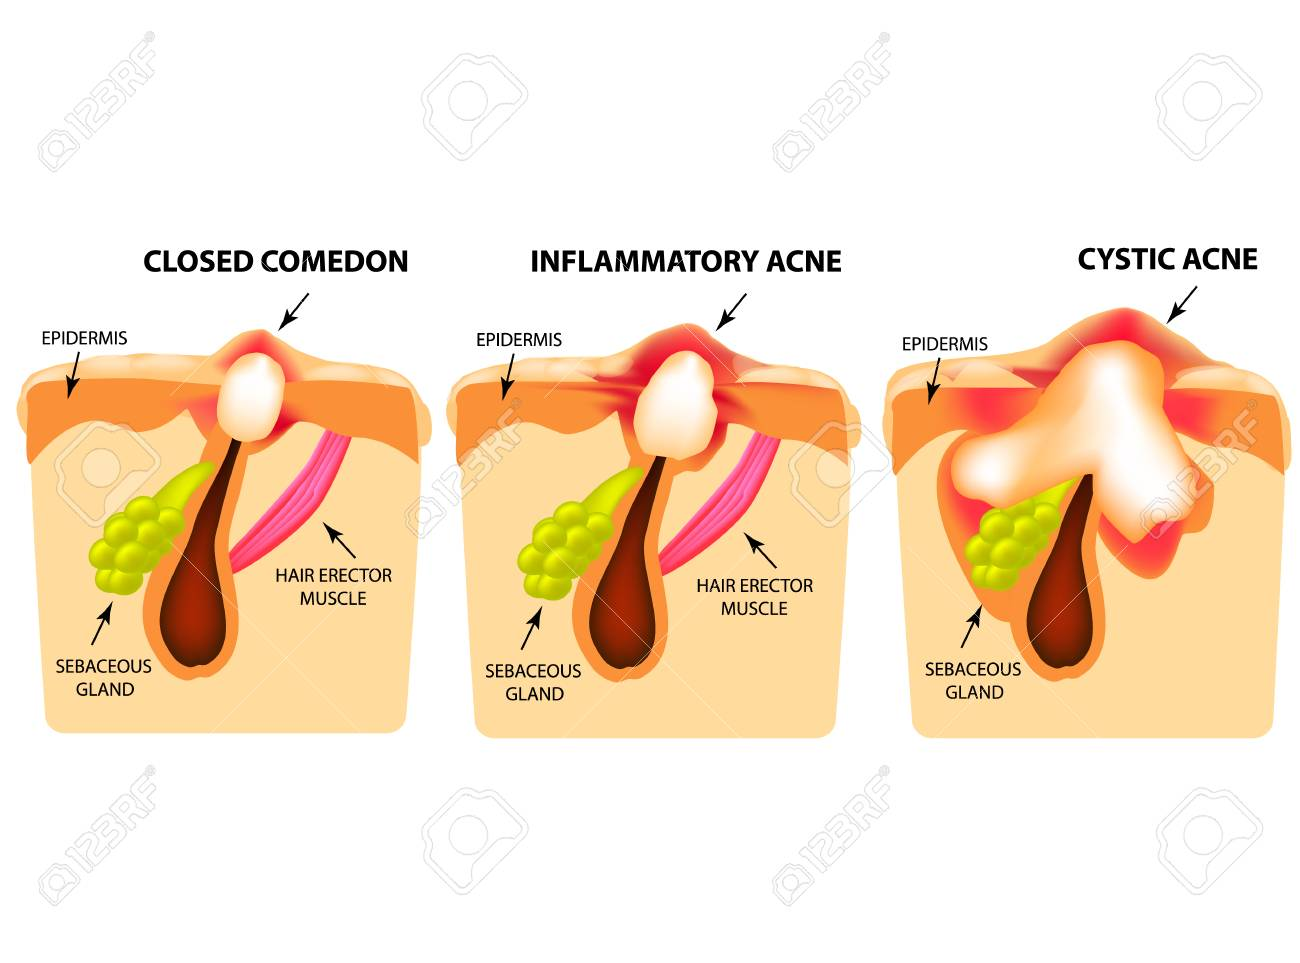 hight resolution of types of acne closed comedones inflammatory acne cystic acne diagram of acne cyst